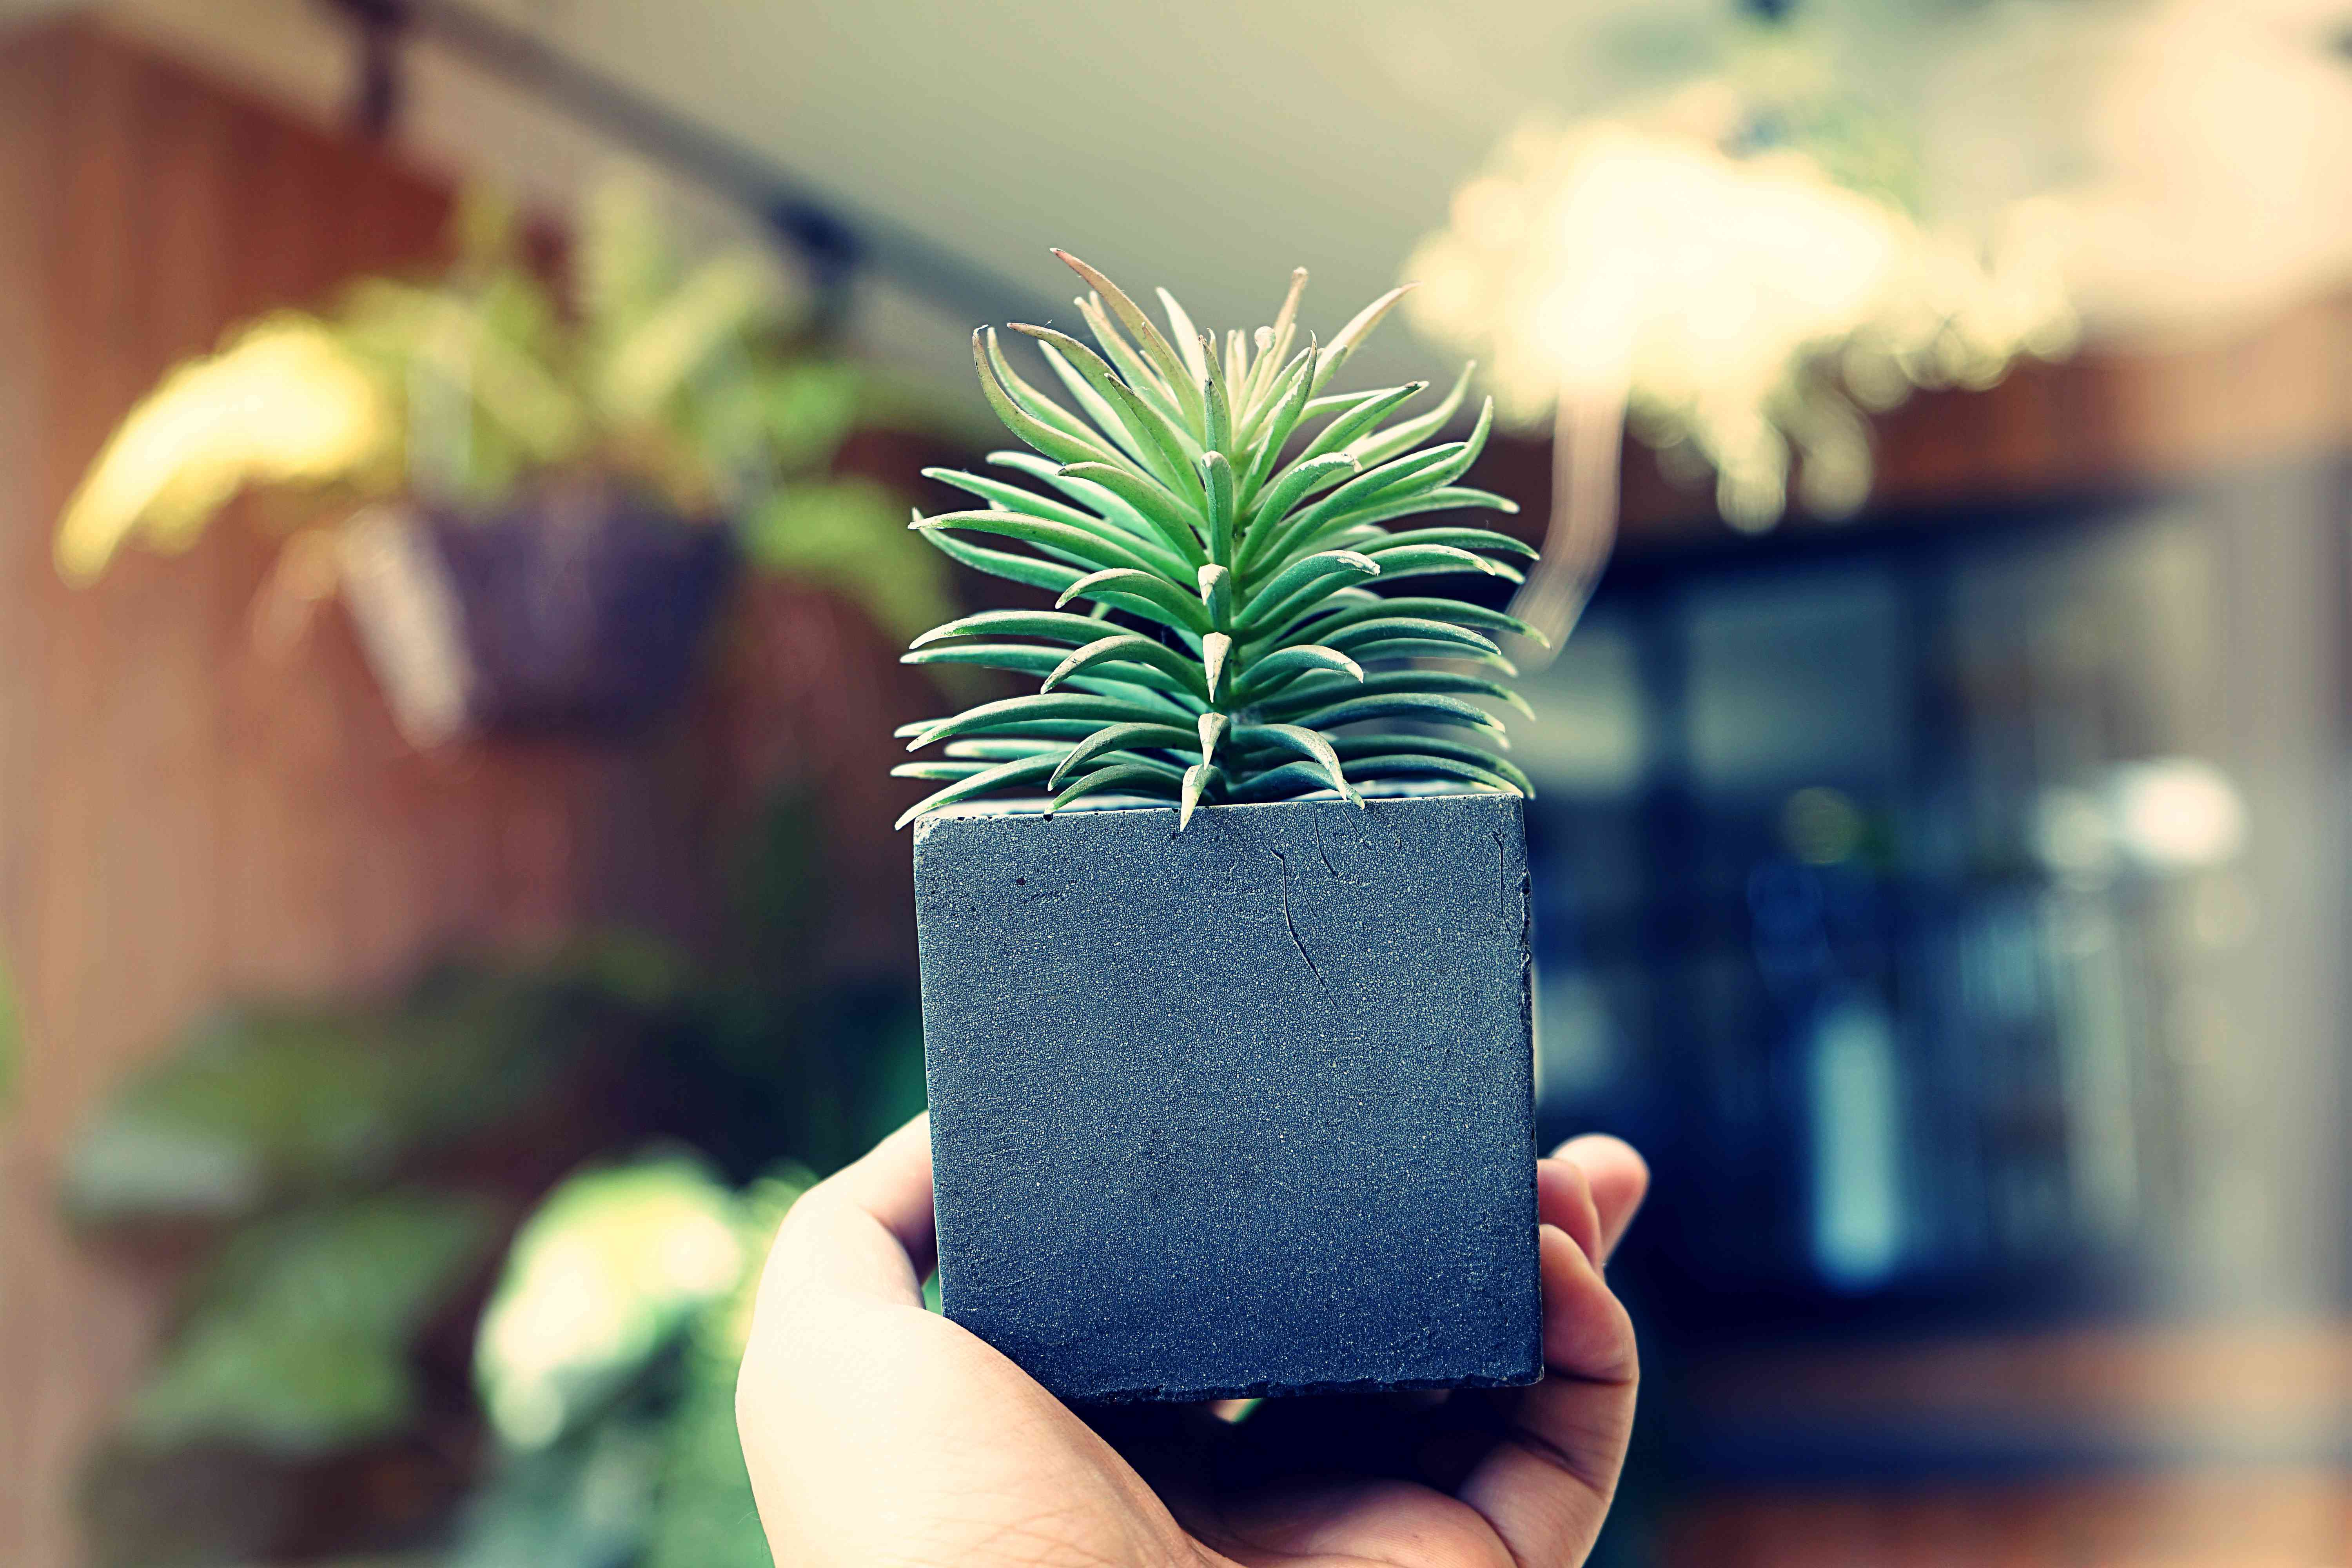 holding pot with a plant